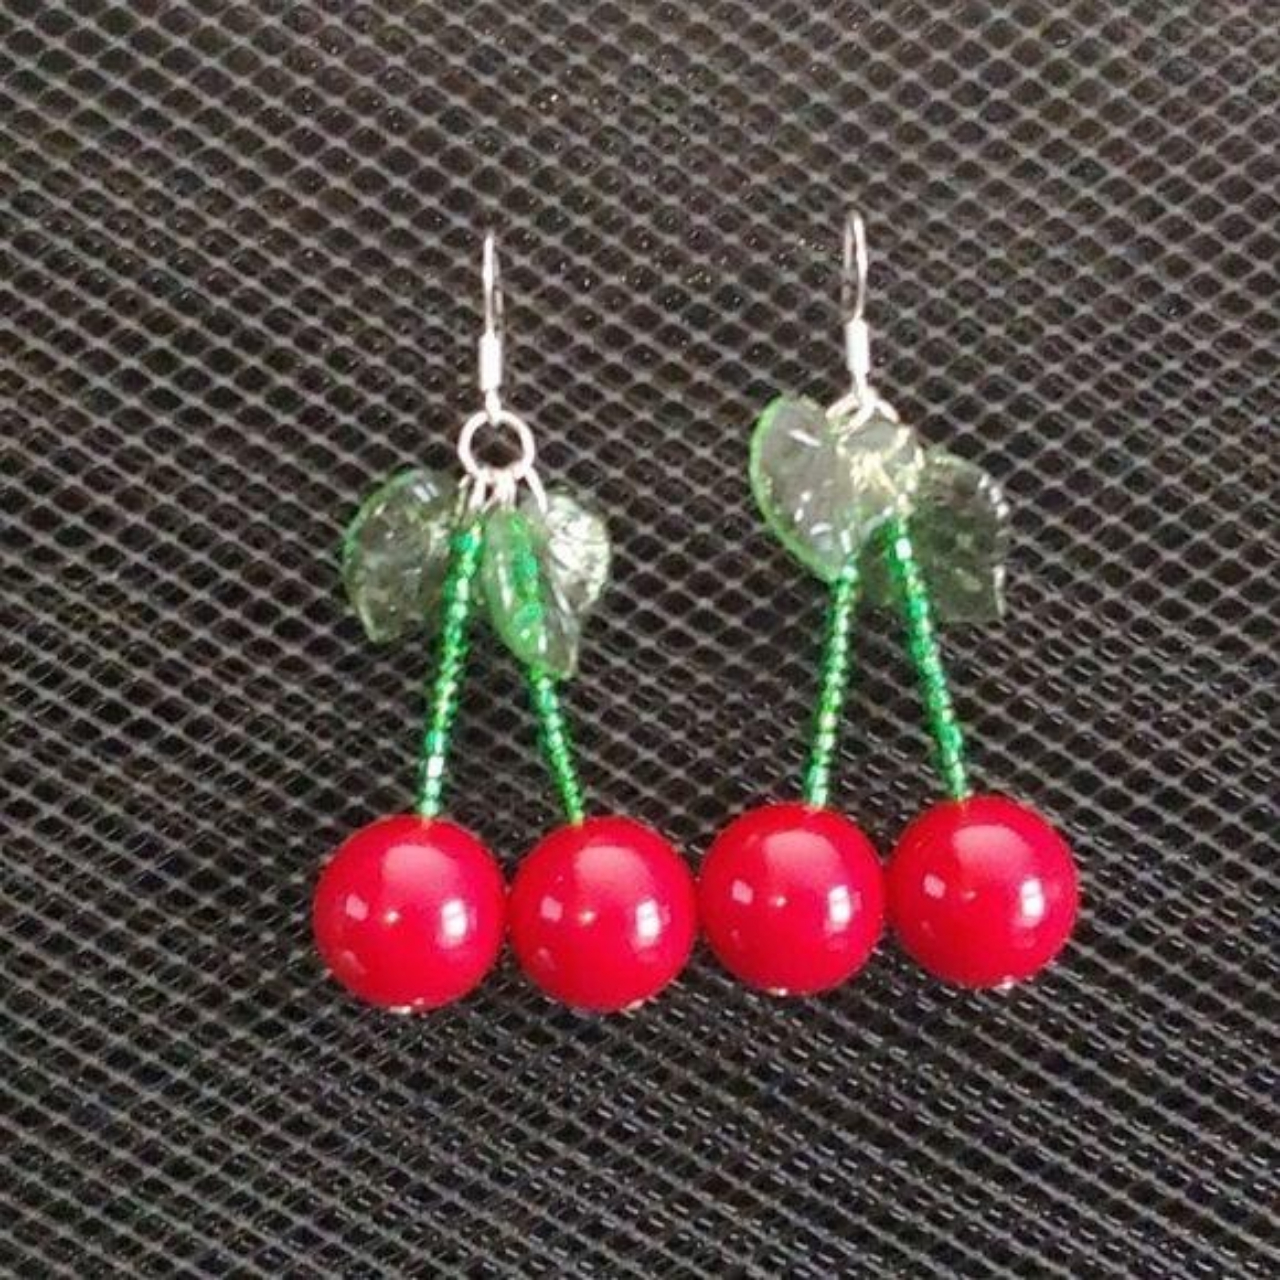 """Product Image 1 - """"Cherries"""" and translucent green leaves"""